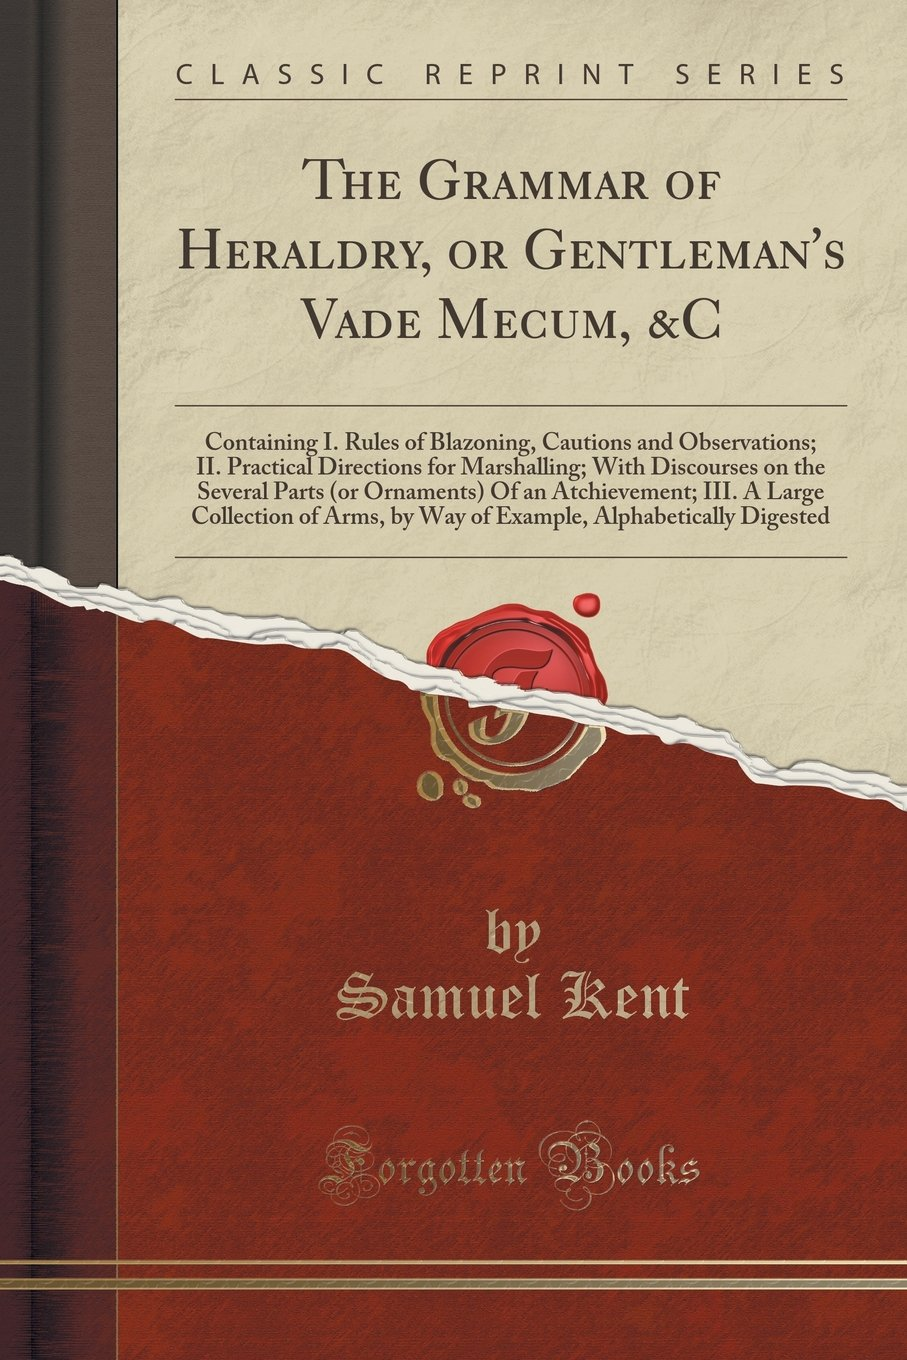 The Grammar of Heraldry, or Gentleman's Vade Mecum, &C: Containing I. Rules of Blazoning, Cautions and Observations; II. Practical Directions for ... Of an Atchievement; III. A Large Collection